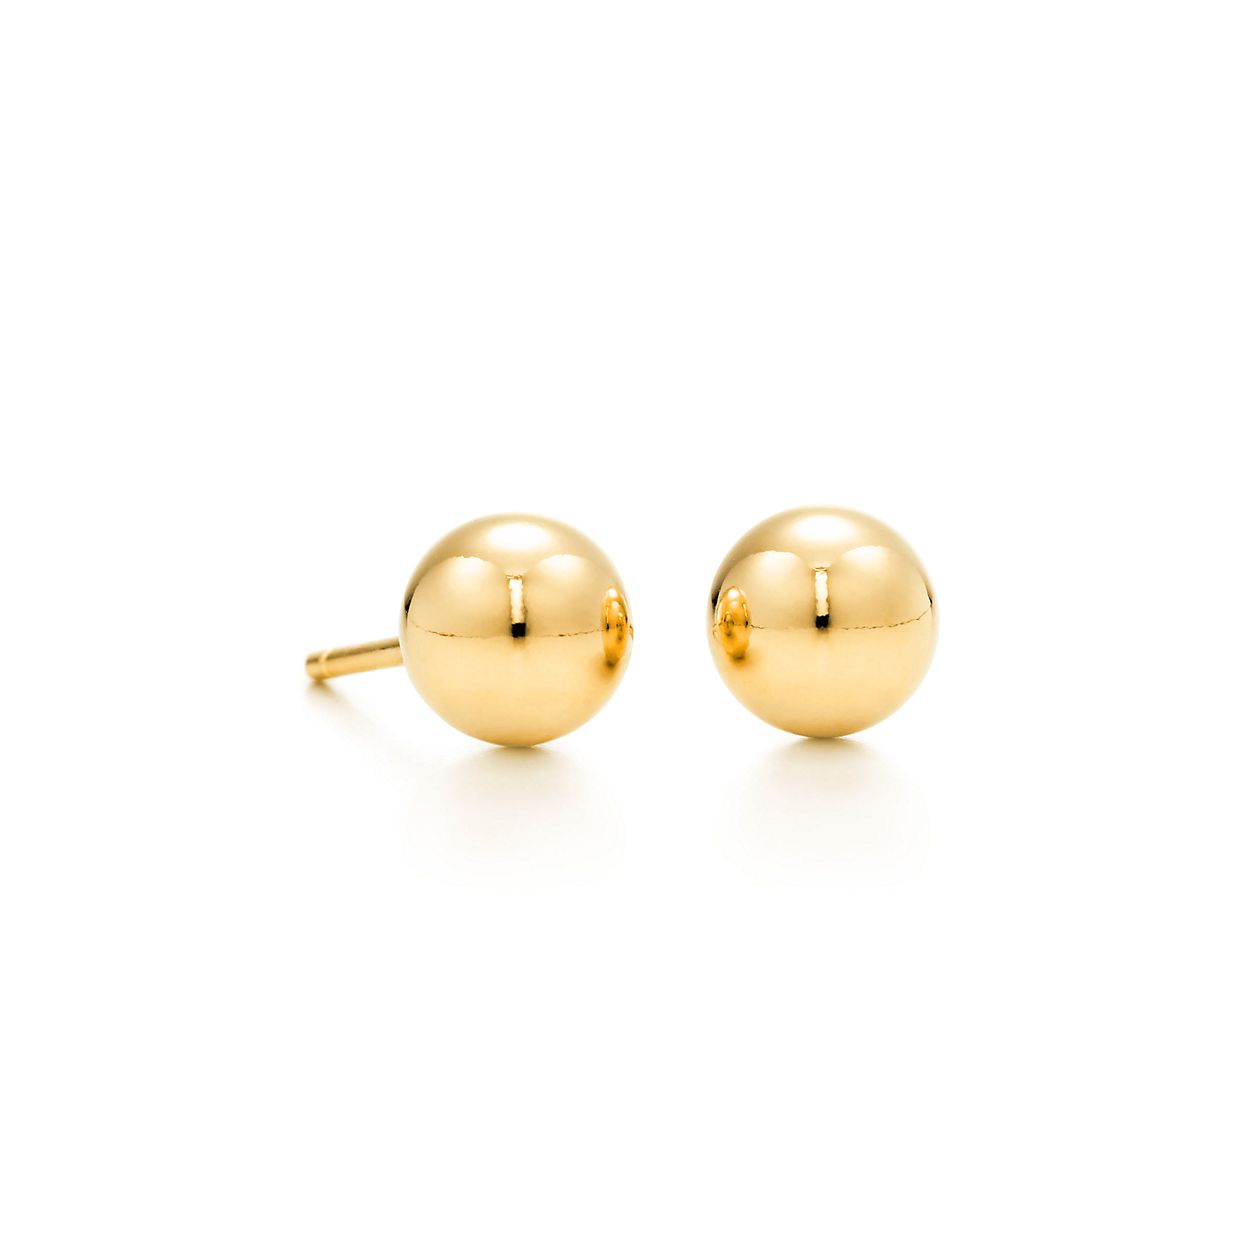 Tiffany Hardwear Ball Earrings